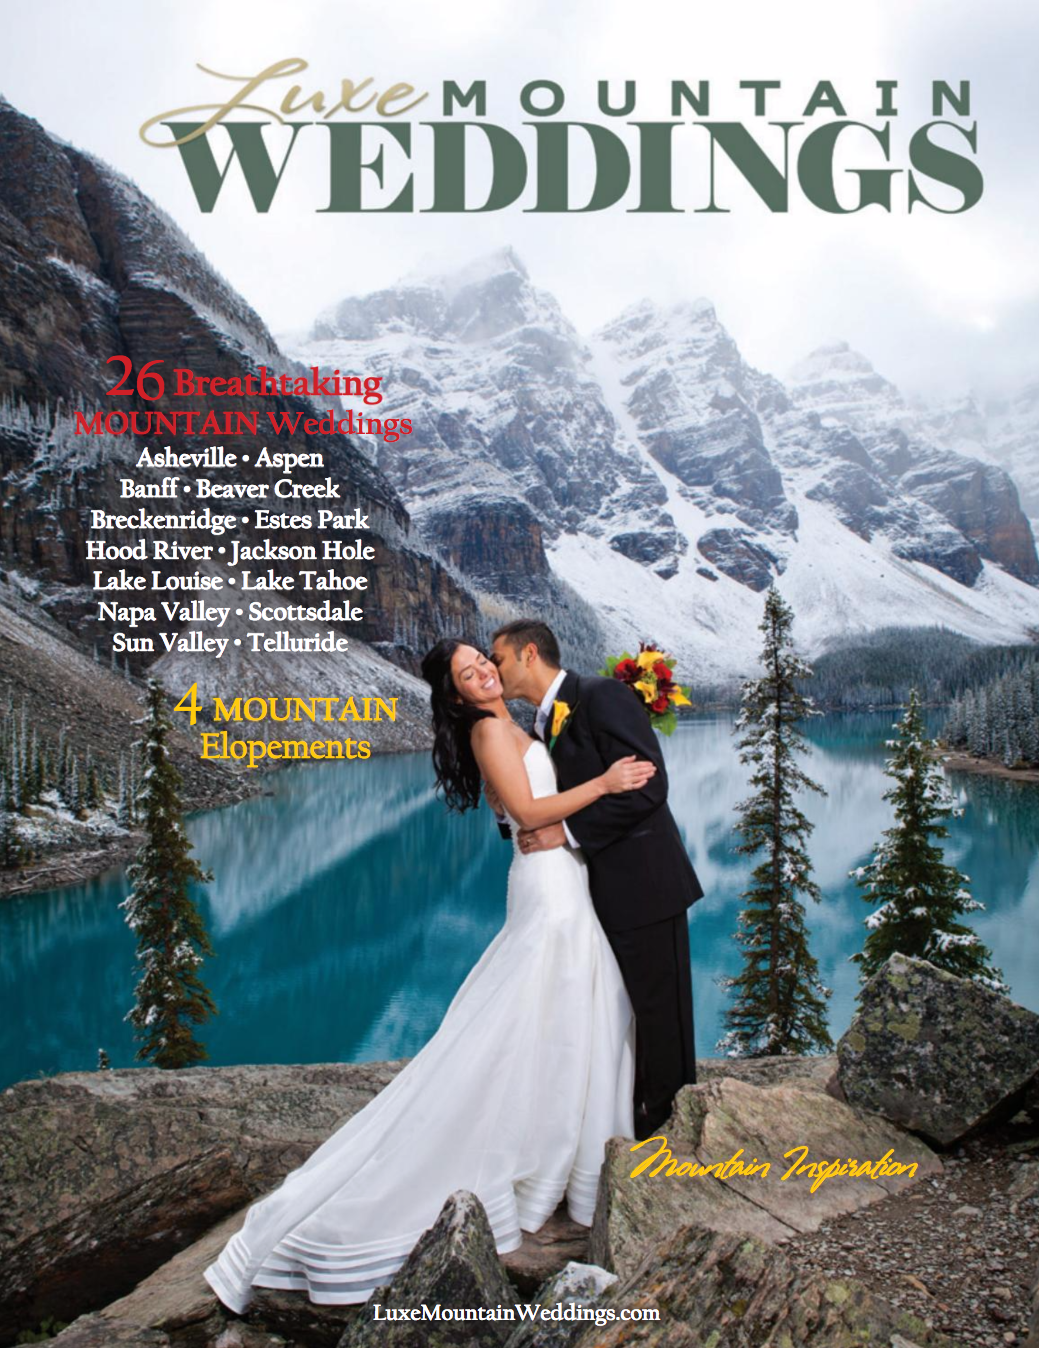 Luxe Mountain Weddings | Dec 2011